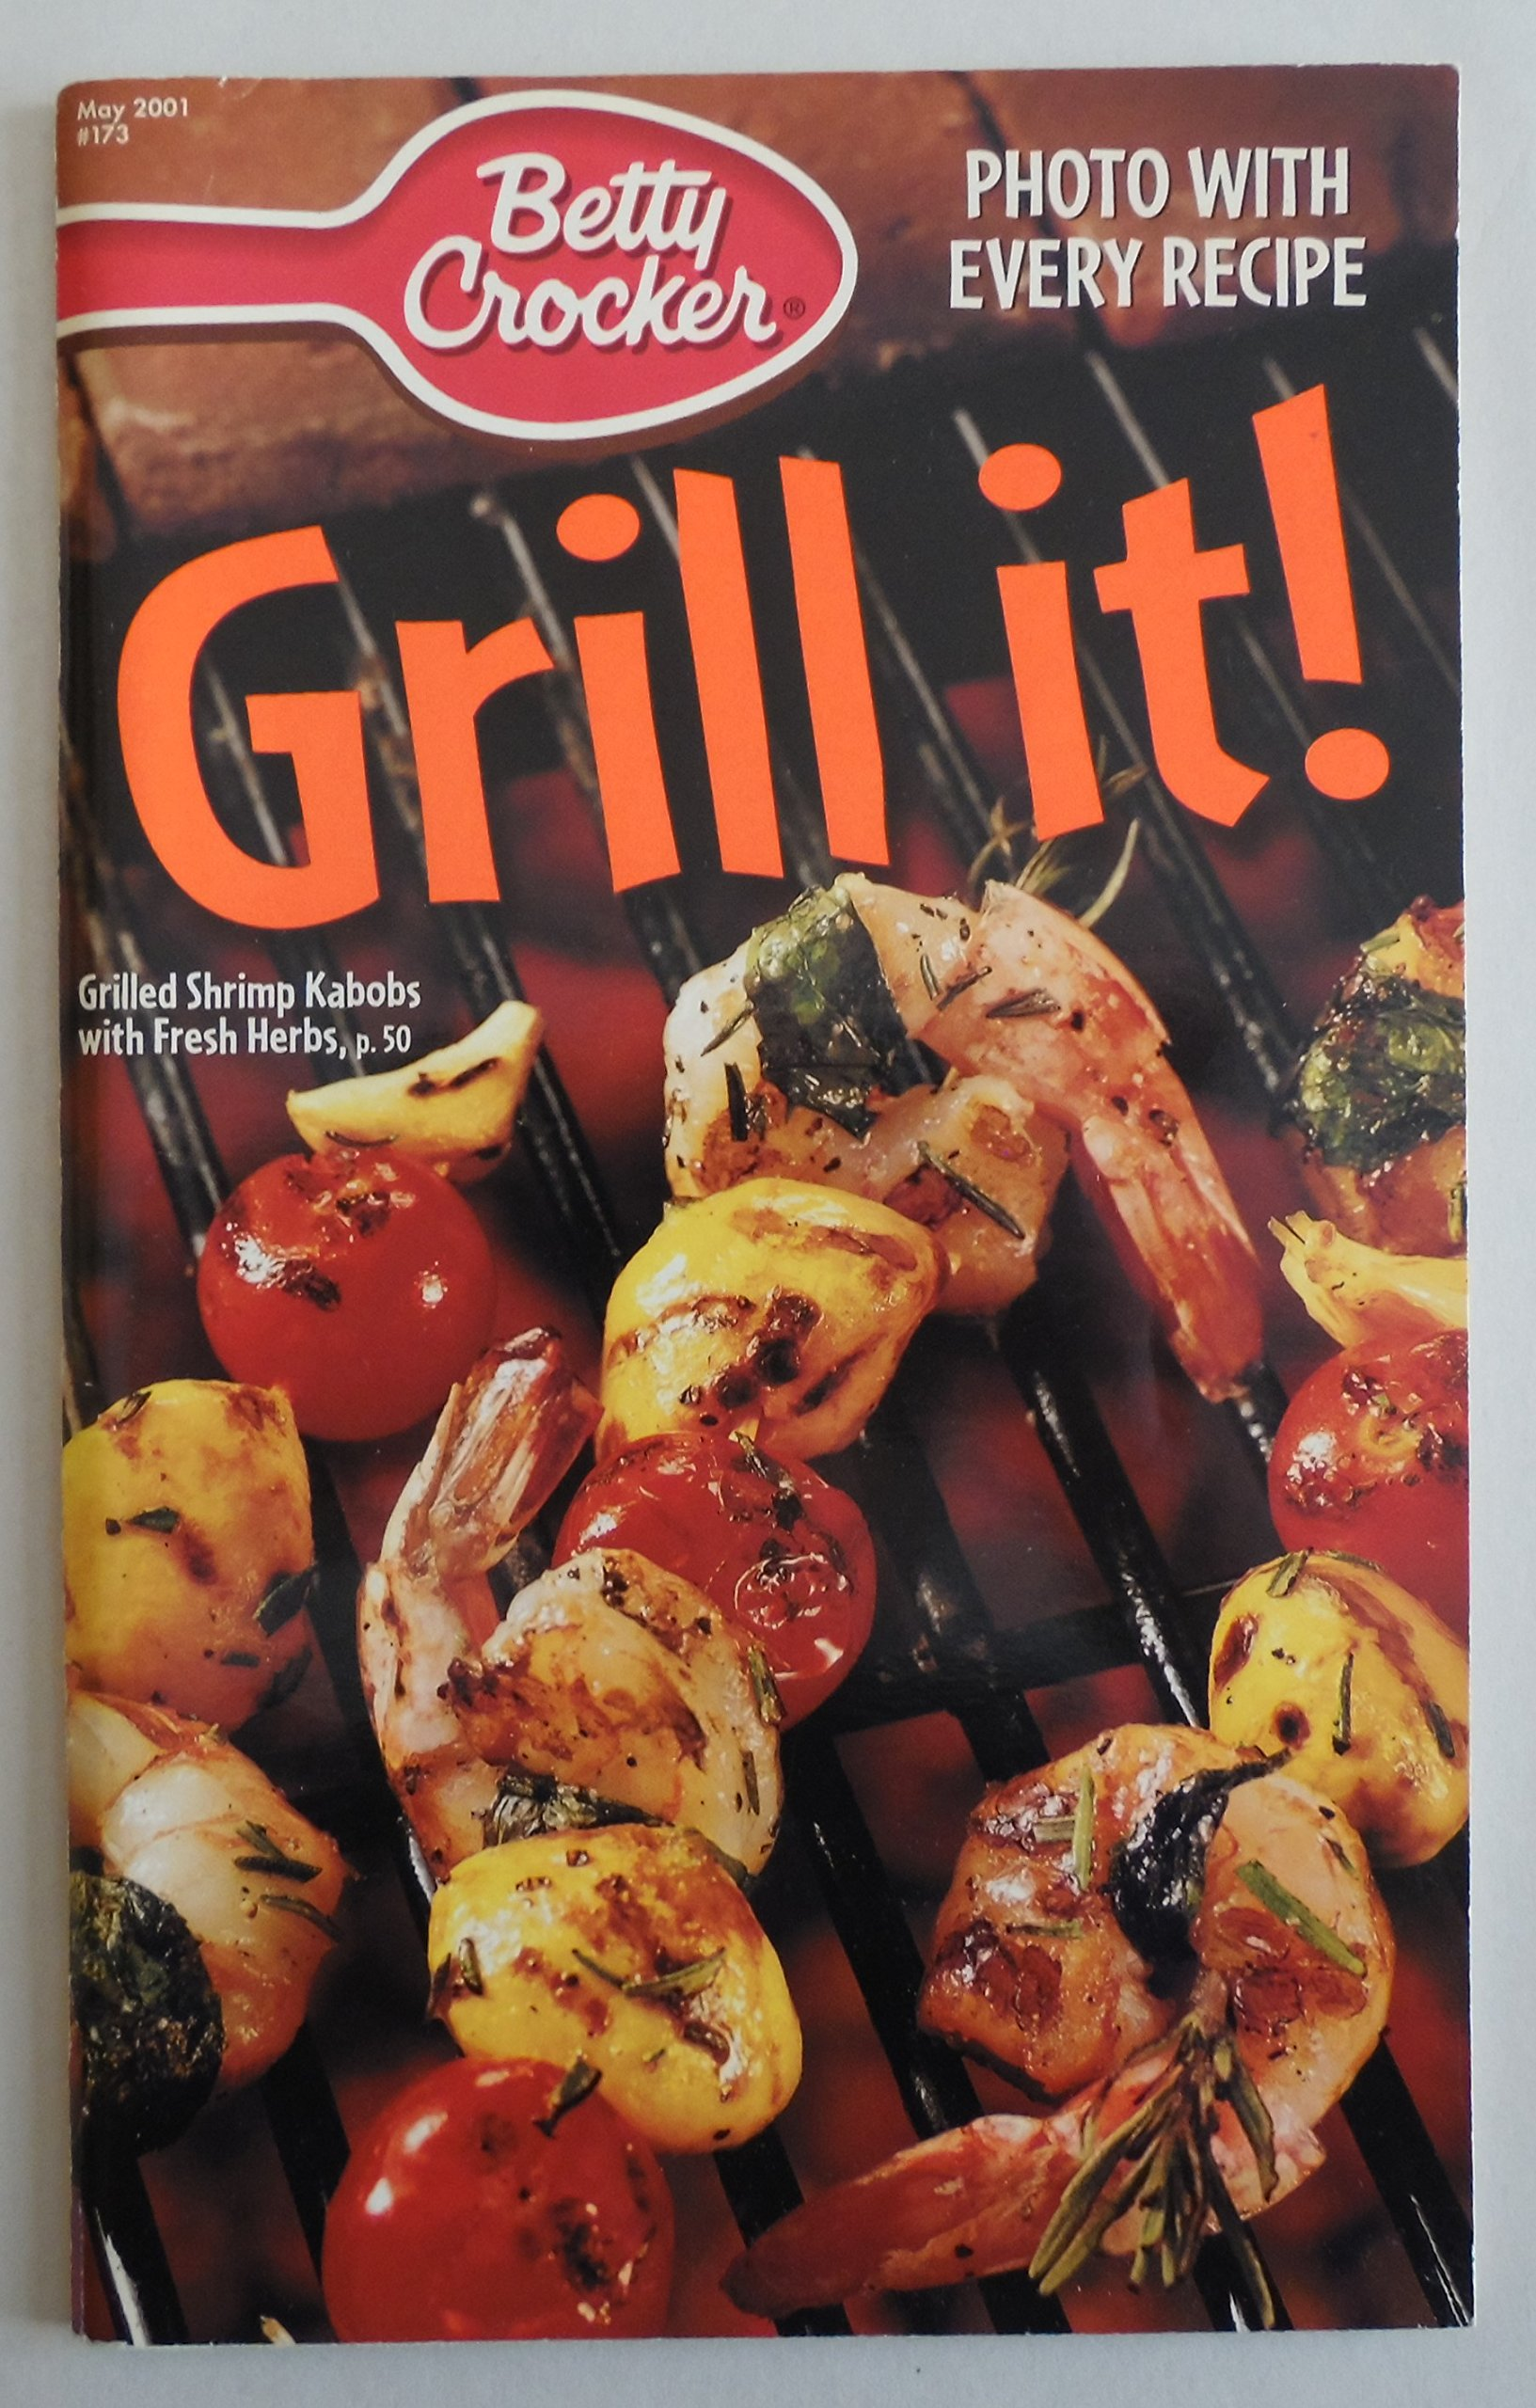 Grill it! (Betty Crocker creative recipes) PDF